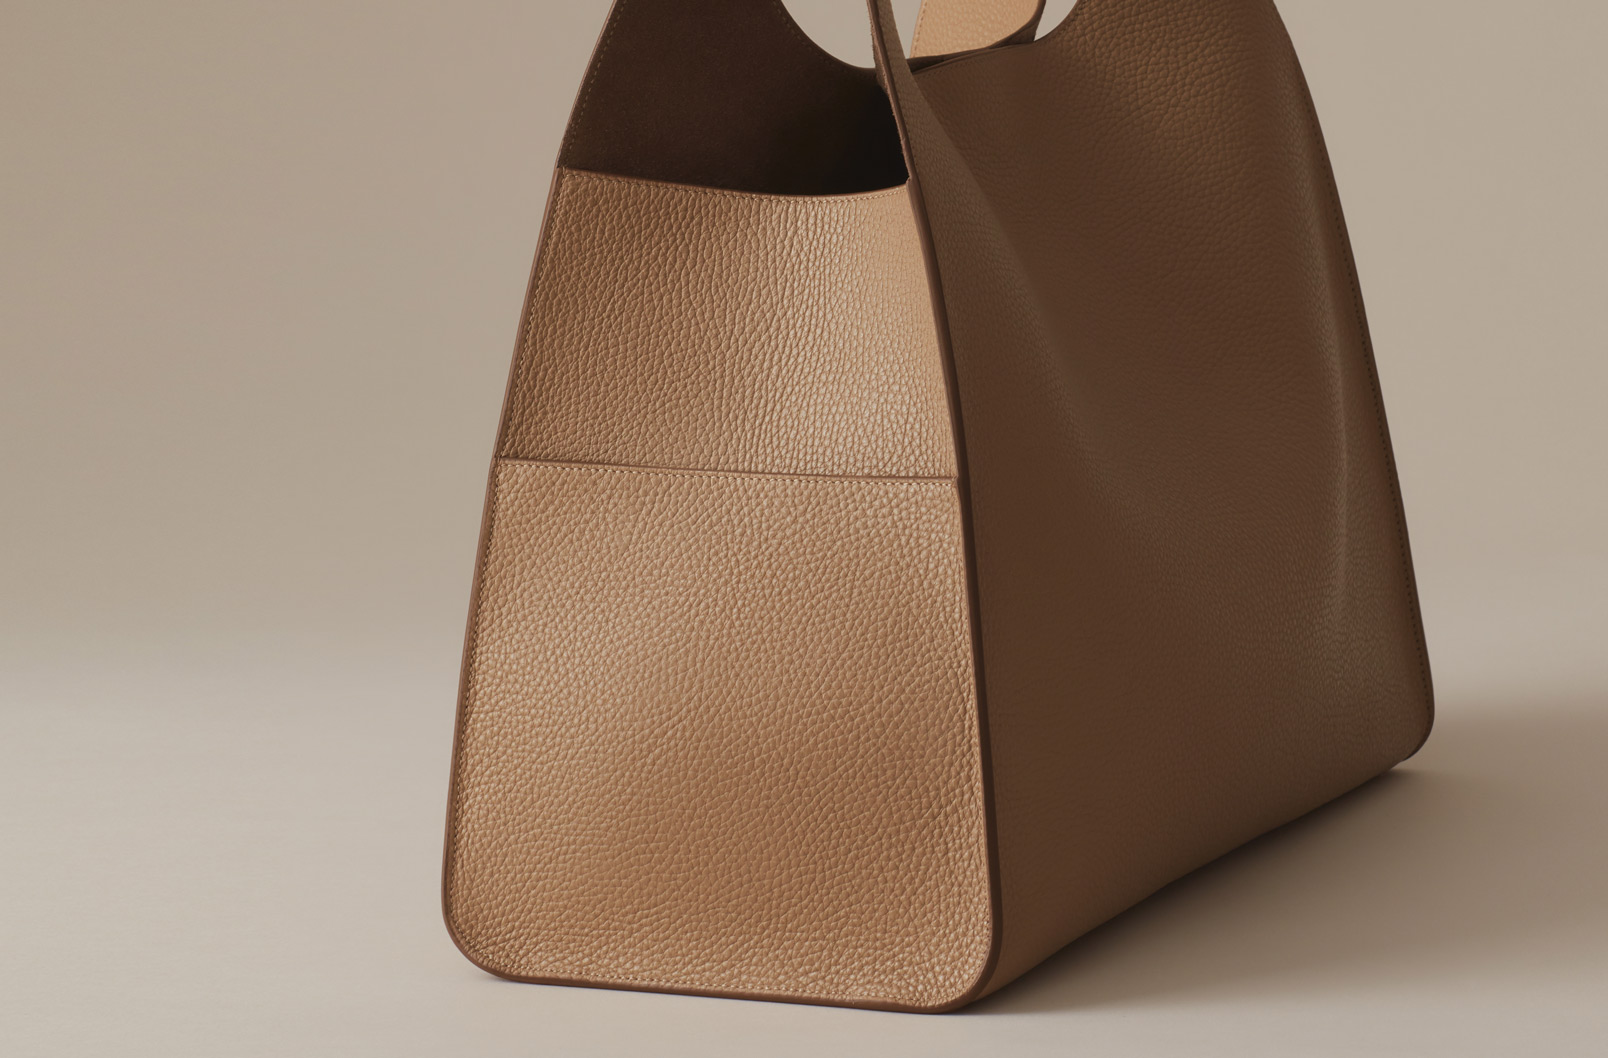 Image showing exterior pockets on Cuyana Oversized Hobo